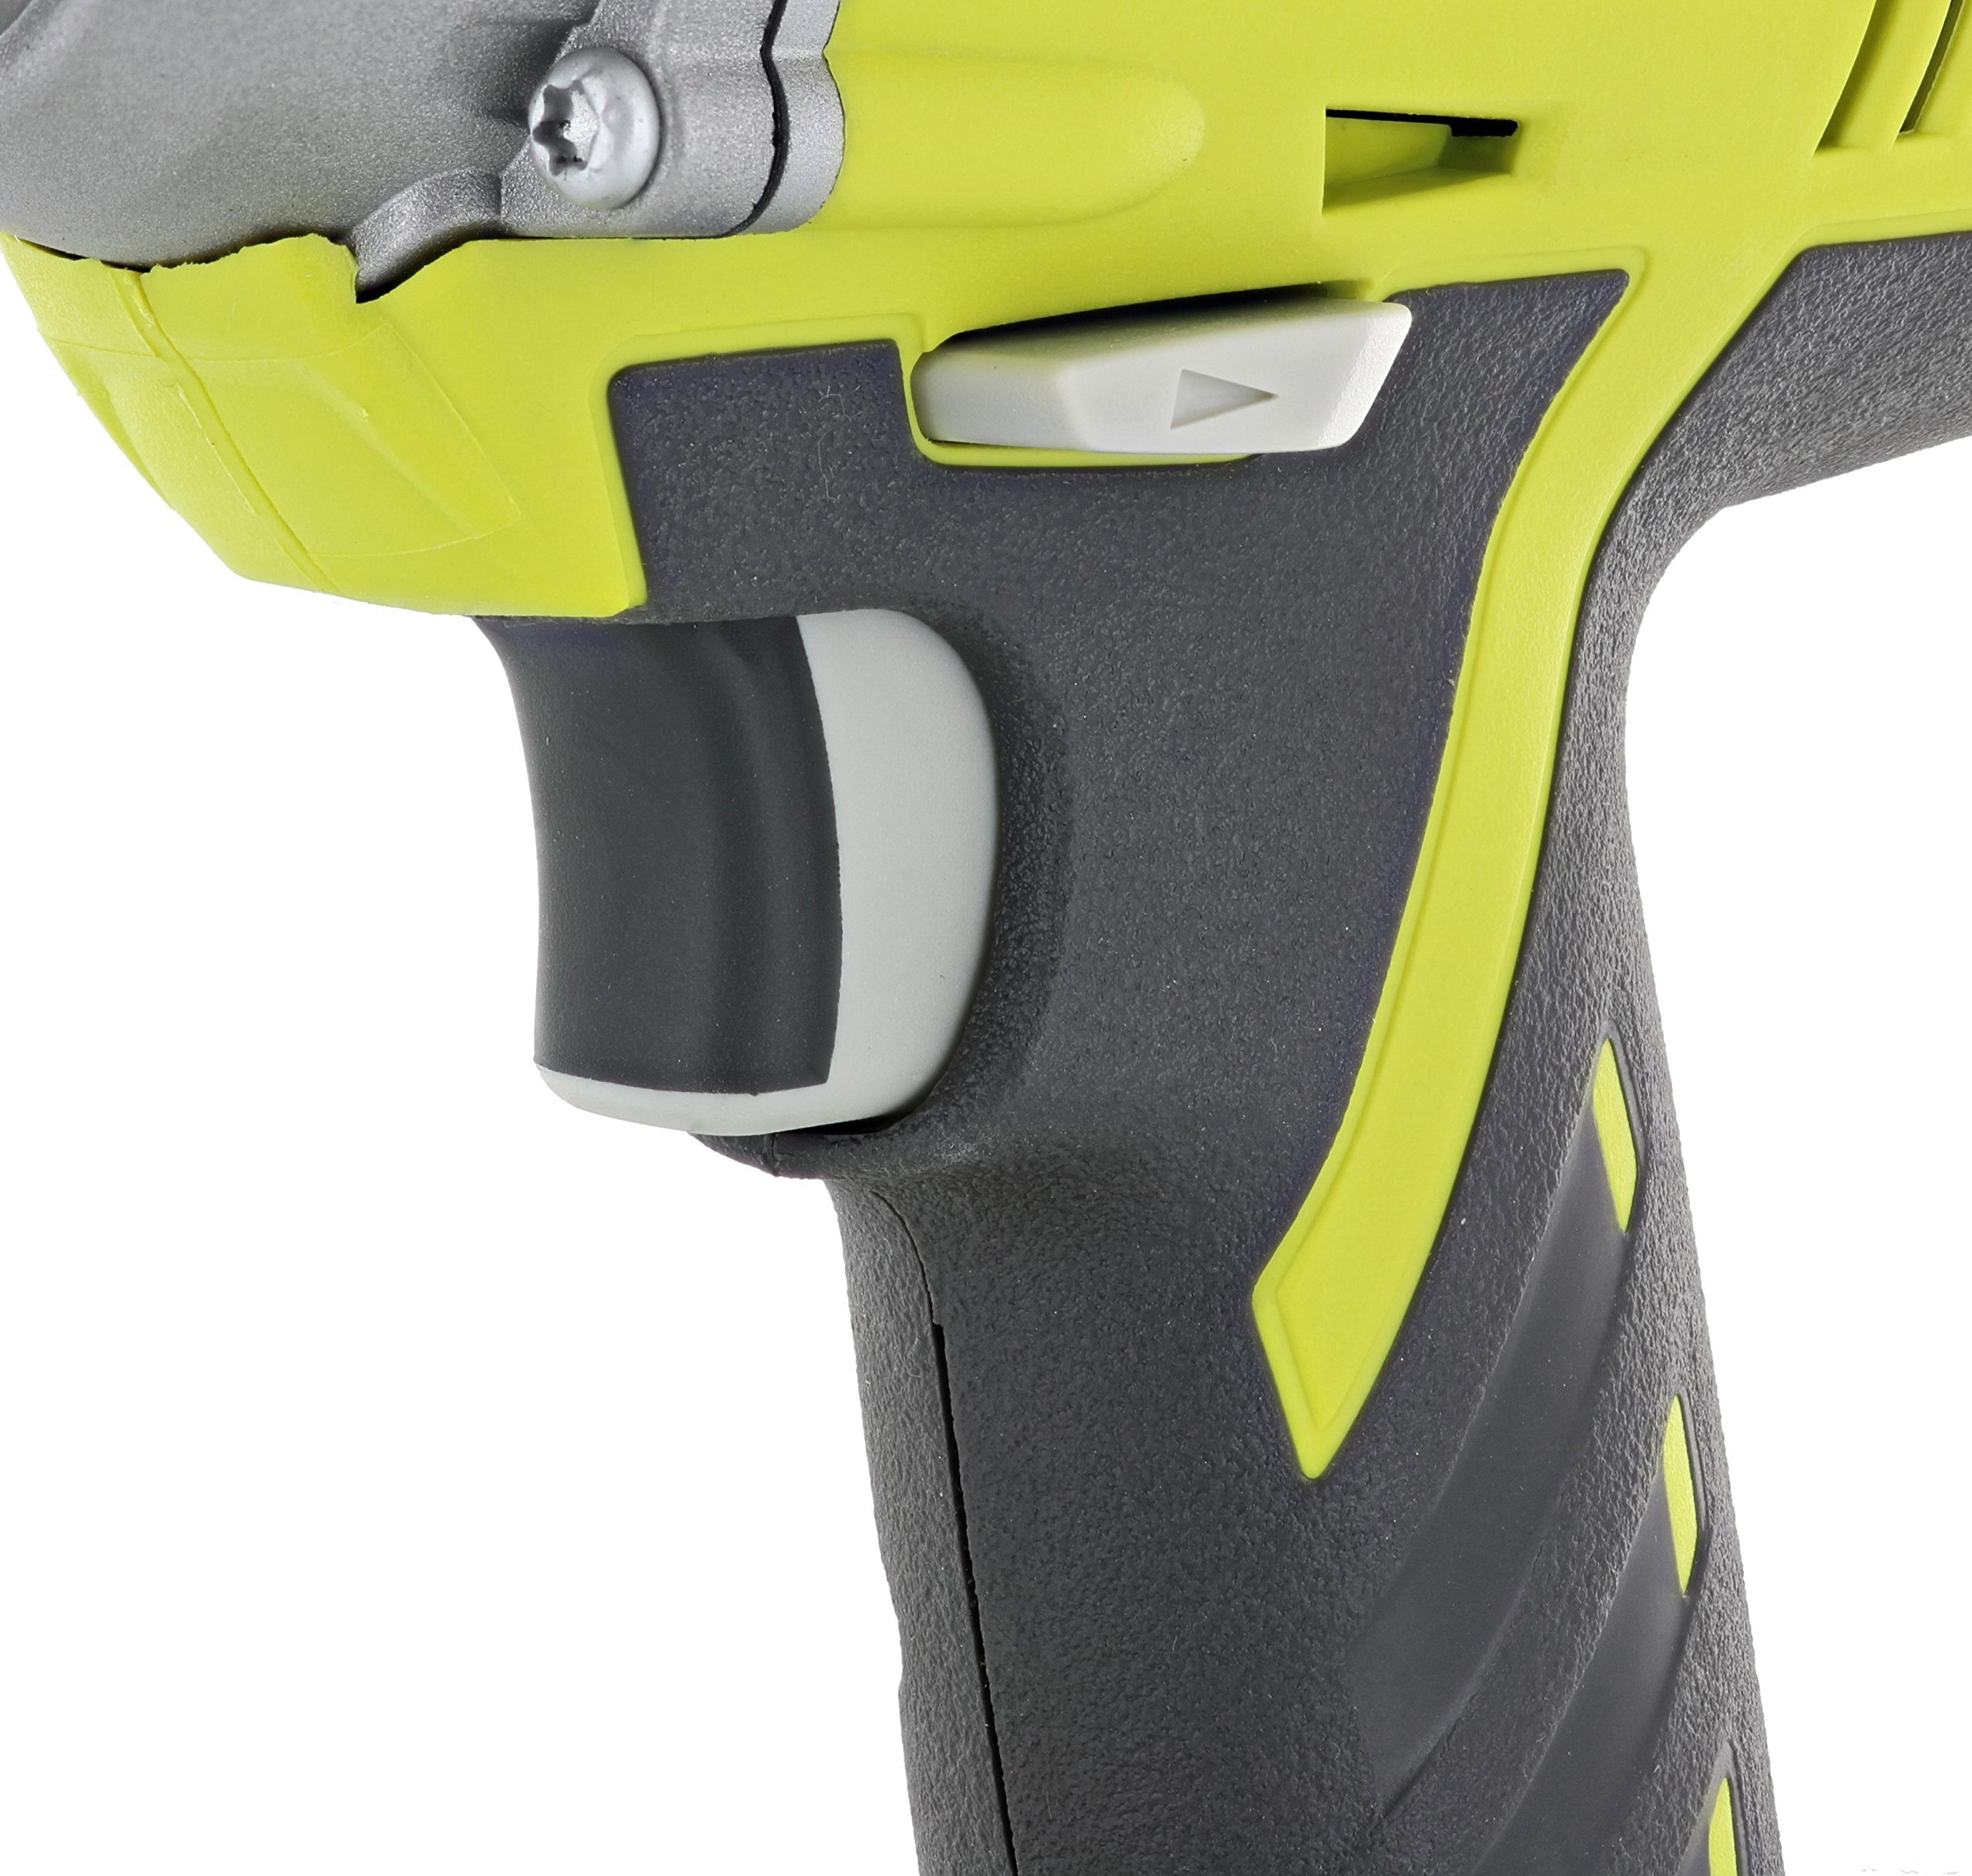 Ryobi P234g One+ 18-Volt Lithium Ion Cordless Impact Driver (Battery Not Included / Power Tool Only) (Certified Refurbished) by Ryobi (Image #5)